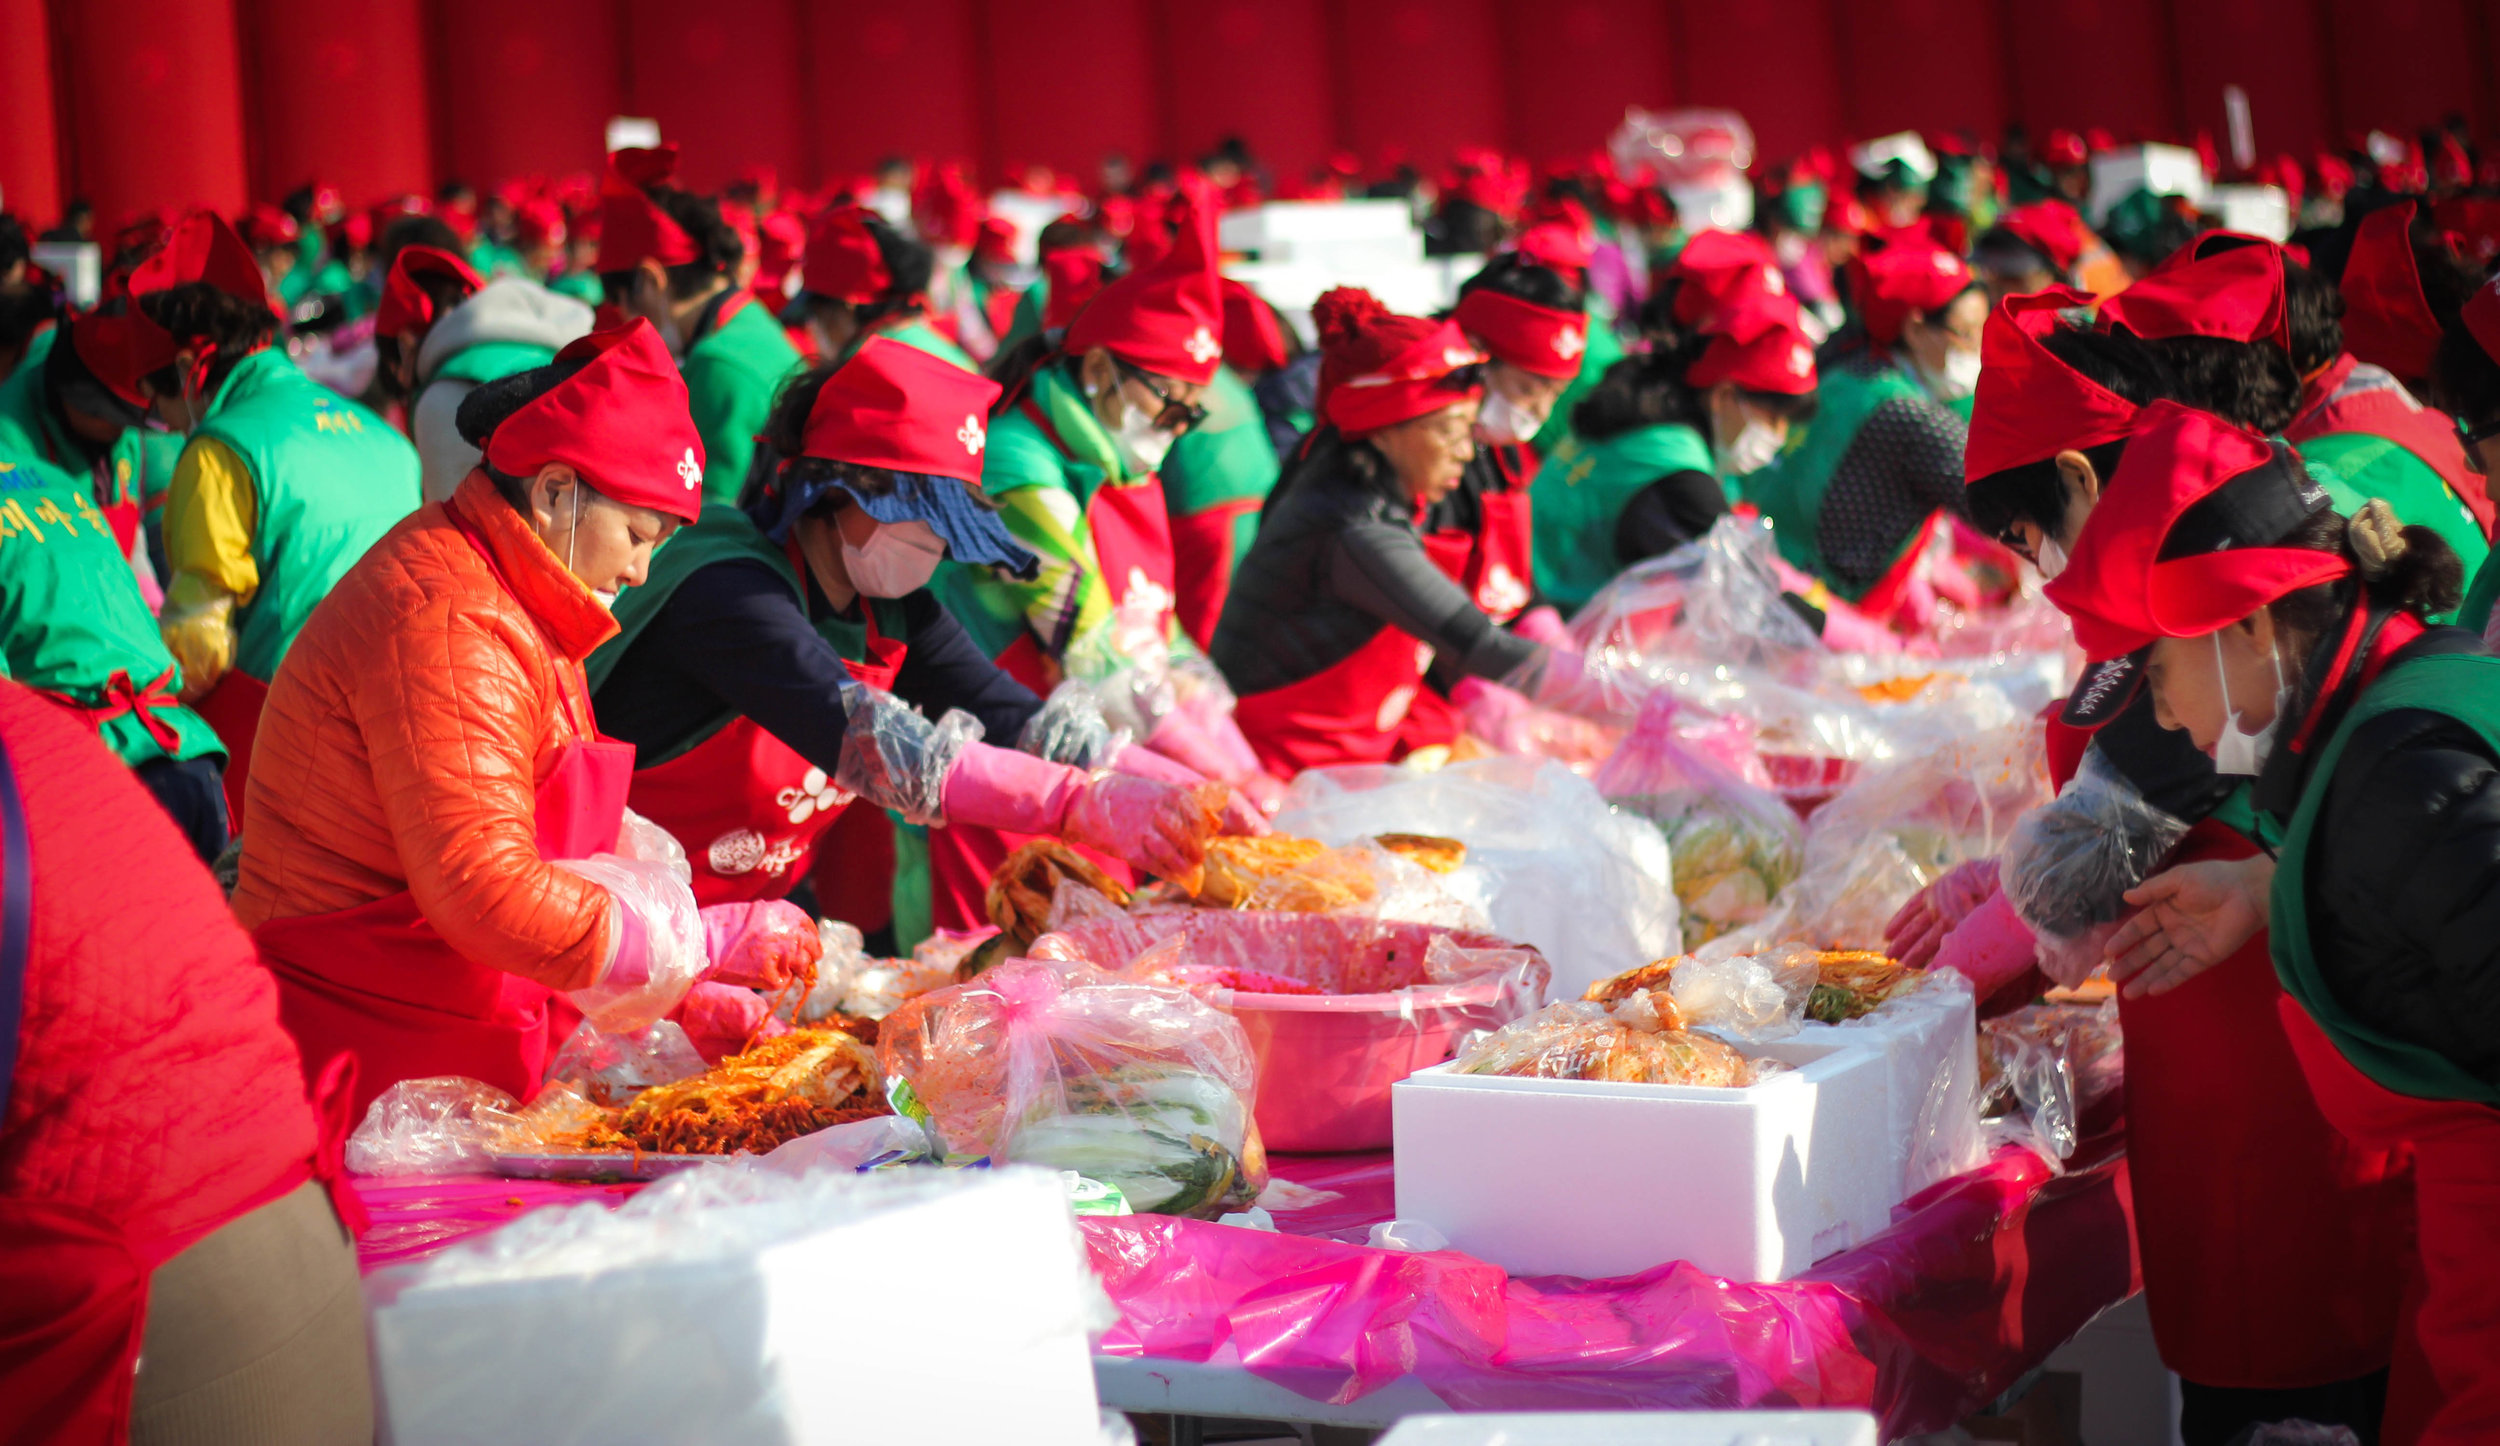 Kimchi as far as the eye can see. I unintentionally visited the Seoul Kimchi festival outside city hall while walking to a palace. I <3 kimchi.